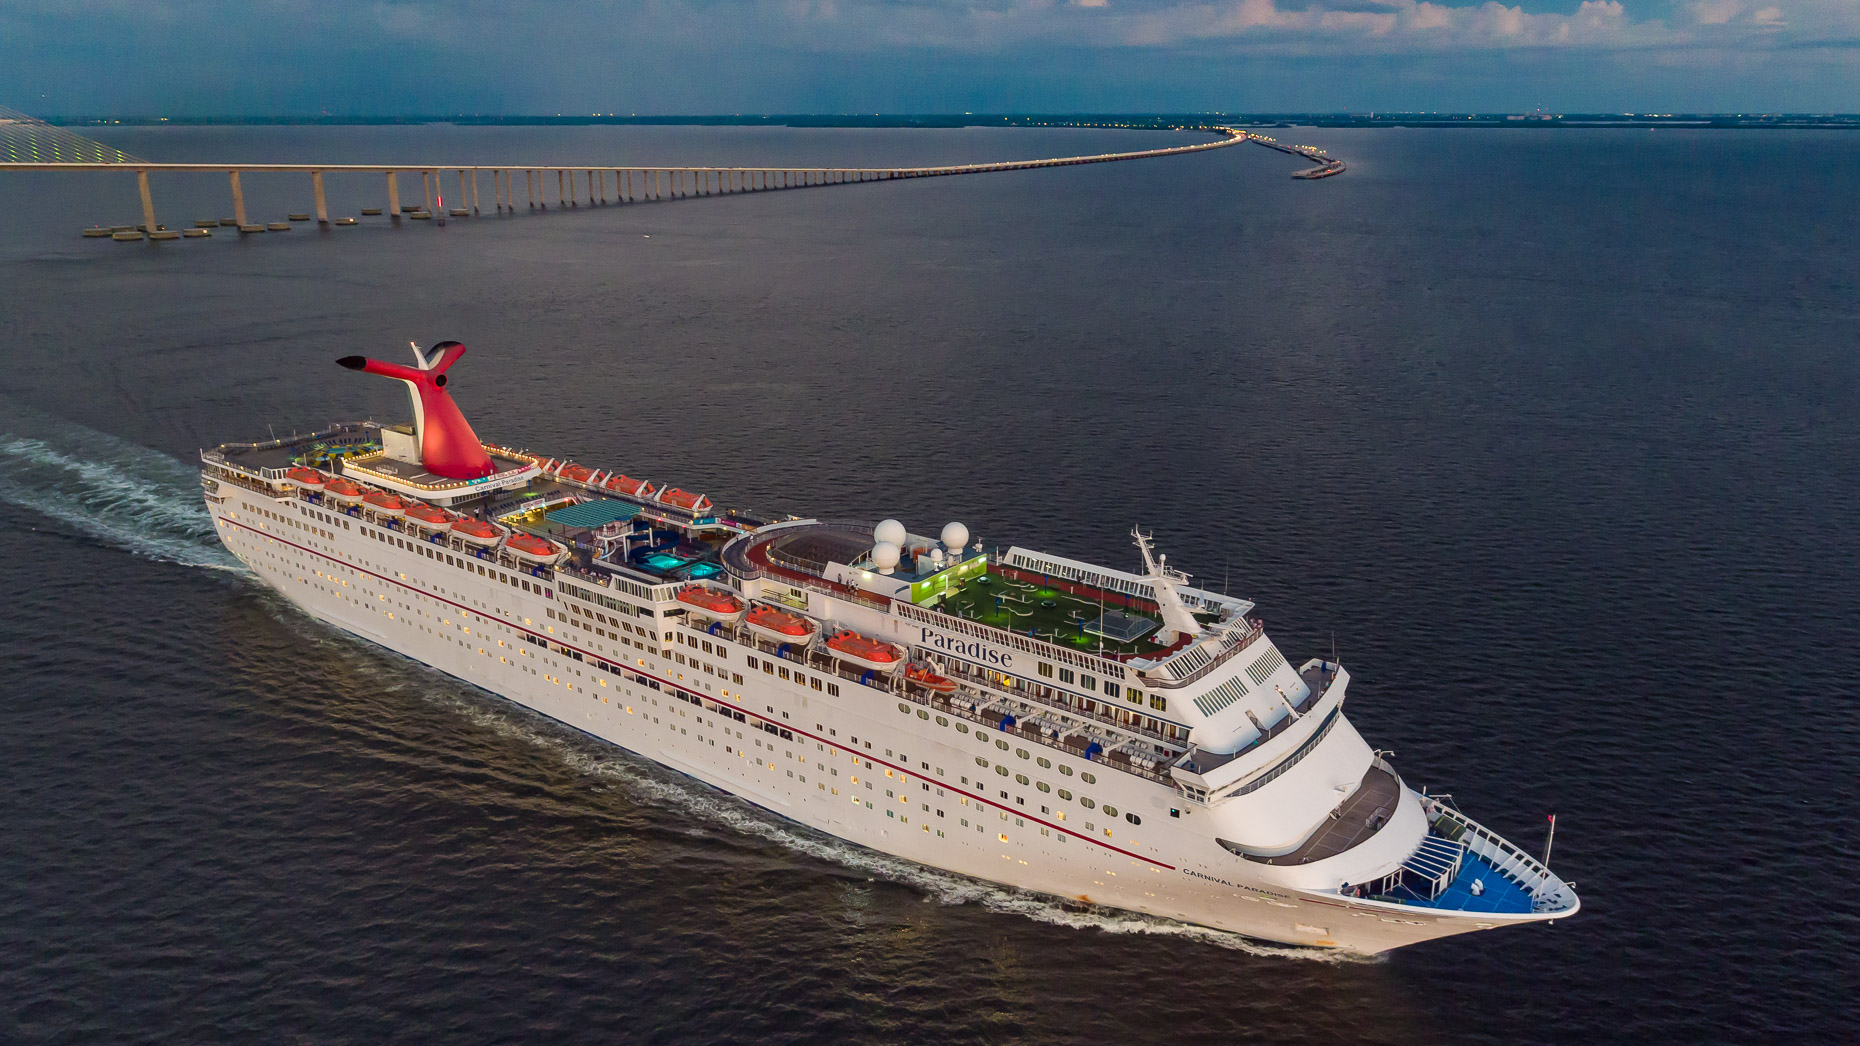 Aerial Carnival Cruise Ship  - Mark Borosch Photography - Tampa Skyway Bridge, FL